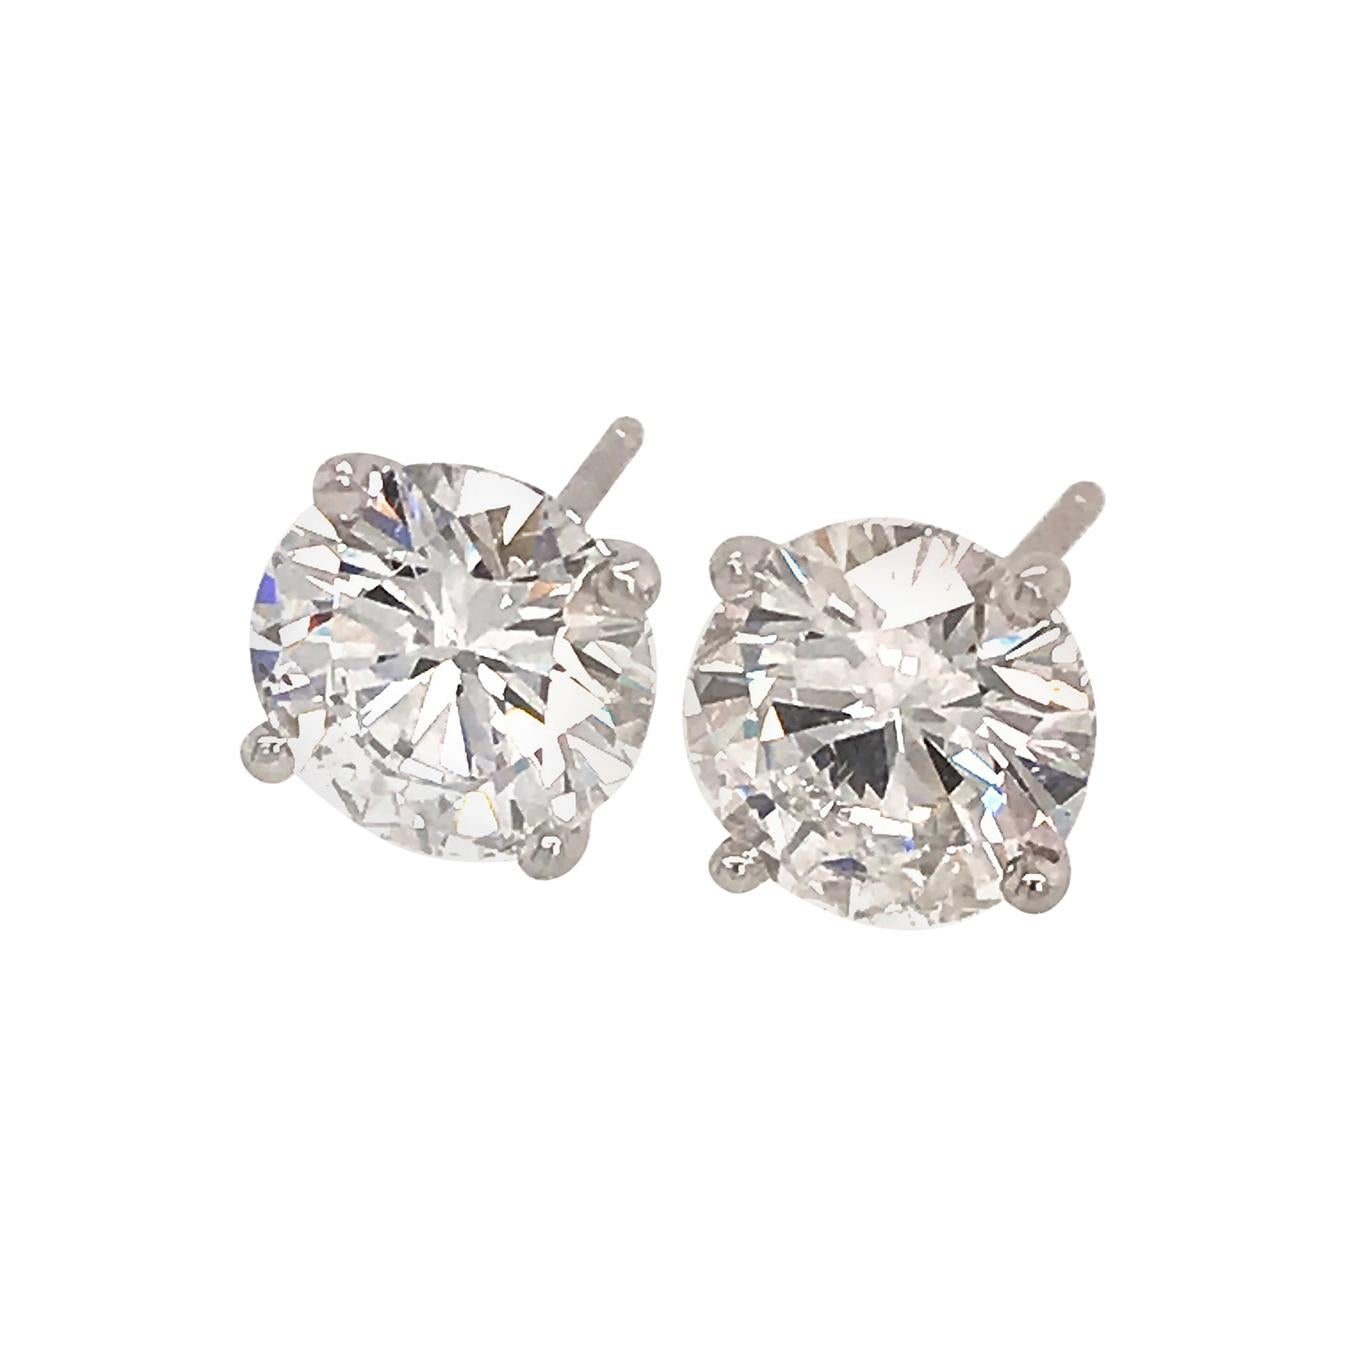 Classic GIA Certified Round Brilliant Diamond Studs Earrings